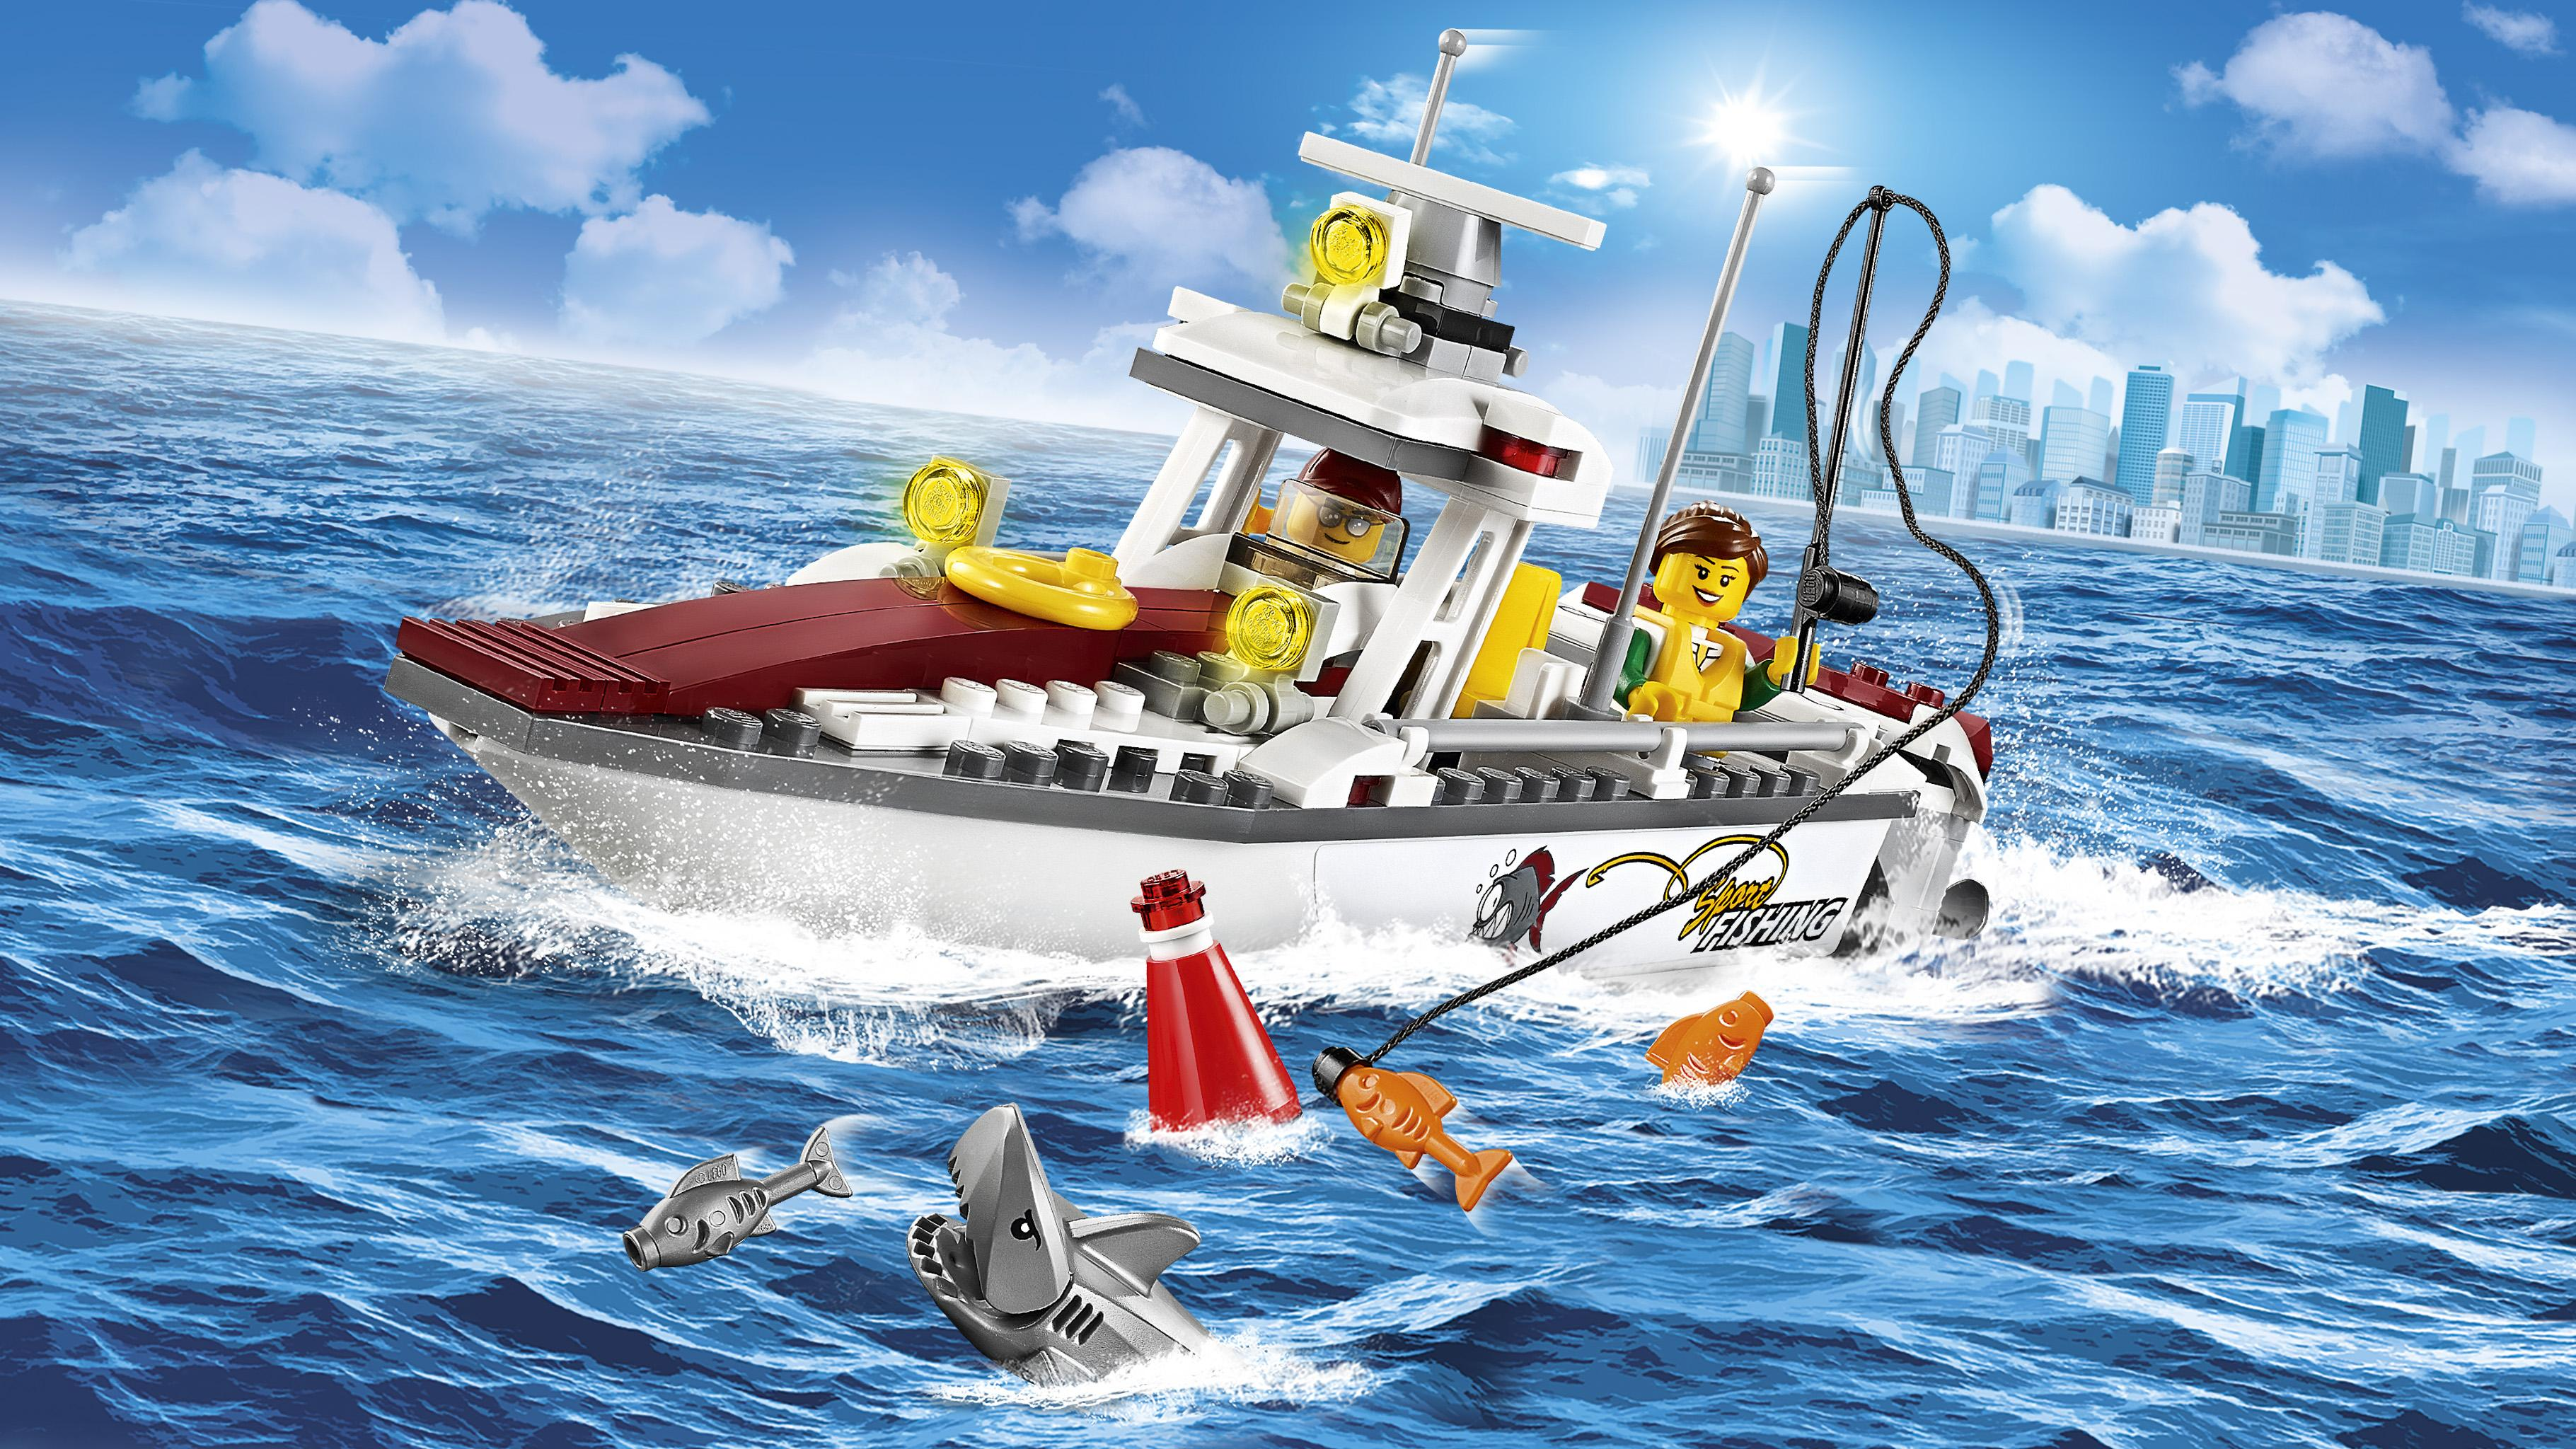 Lego city fishing boat 60147 creative play toy for Ocean city deep sea fishing